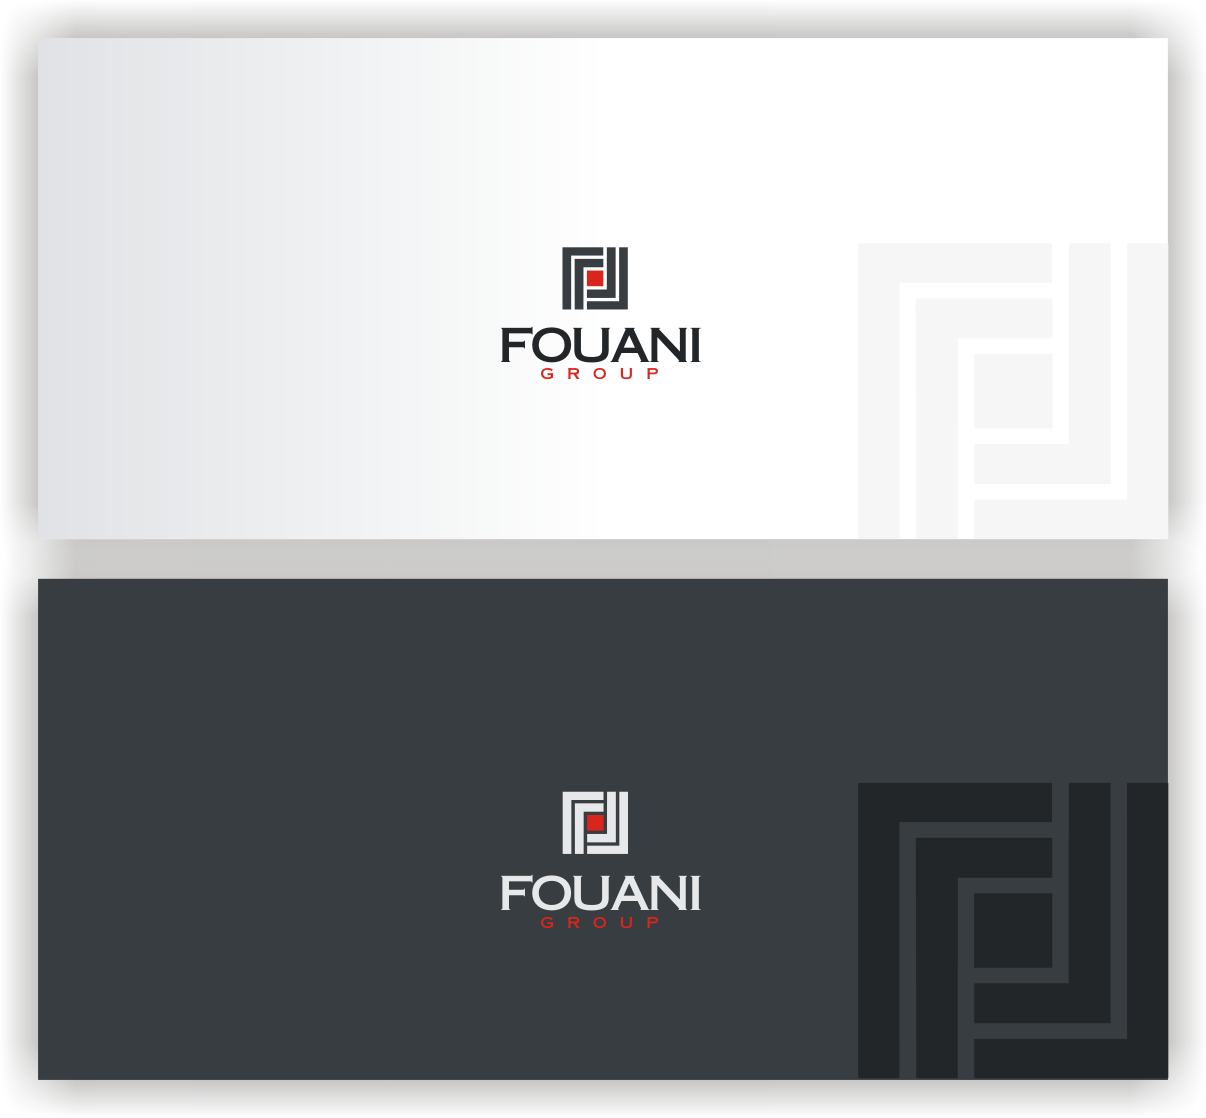 """New logo wanted for Fouani Group (Logo should be designed only with the """"Fouani"""" word)"""